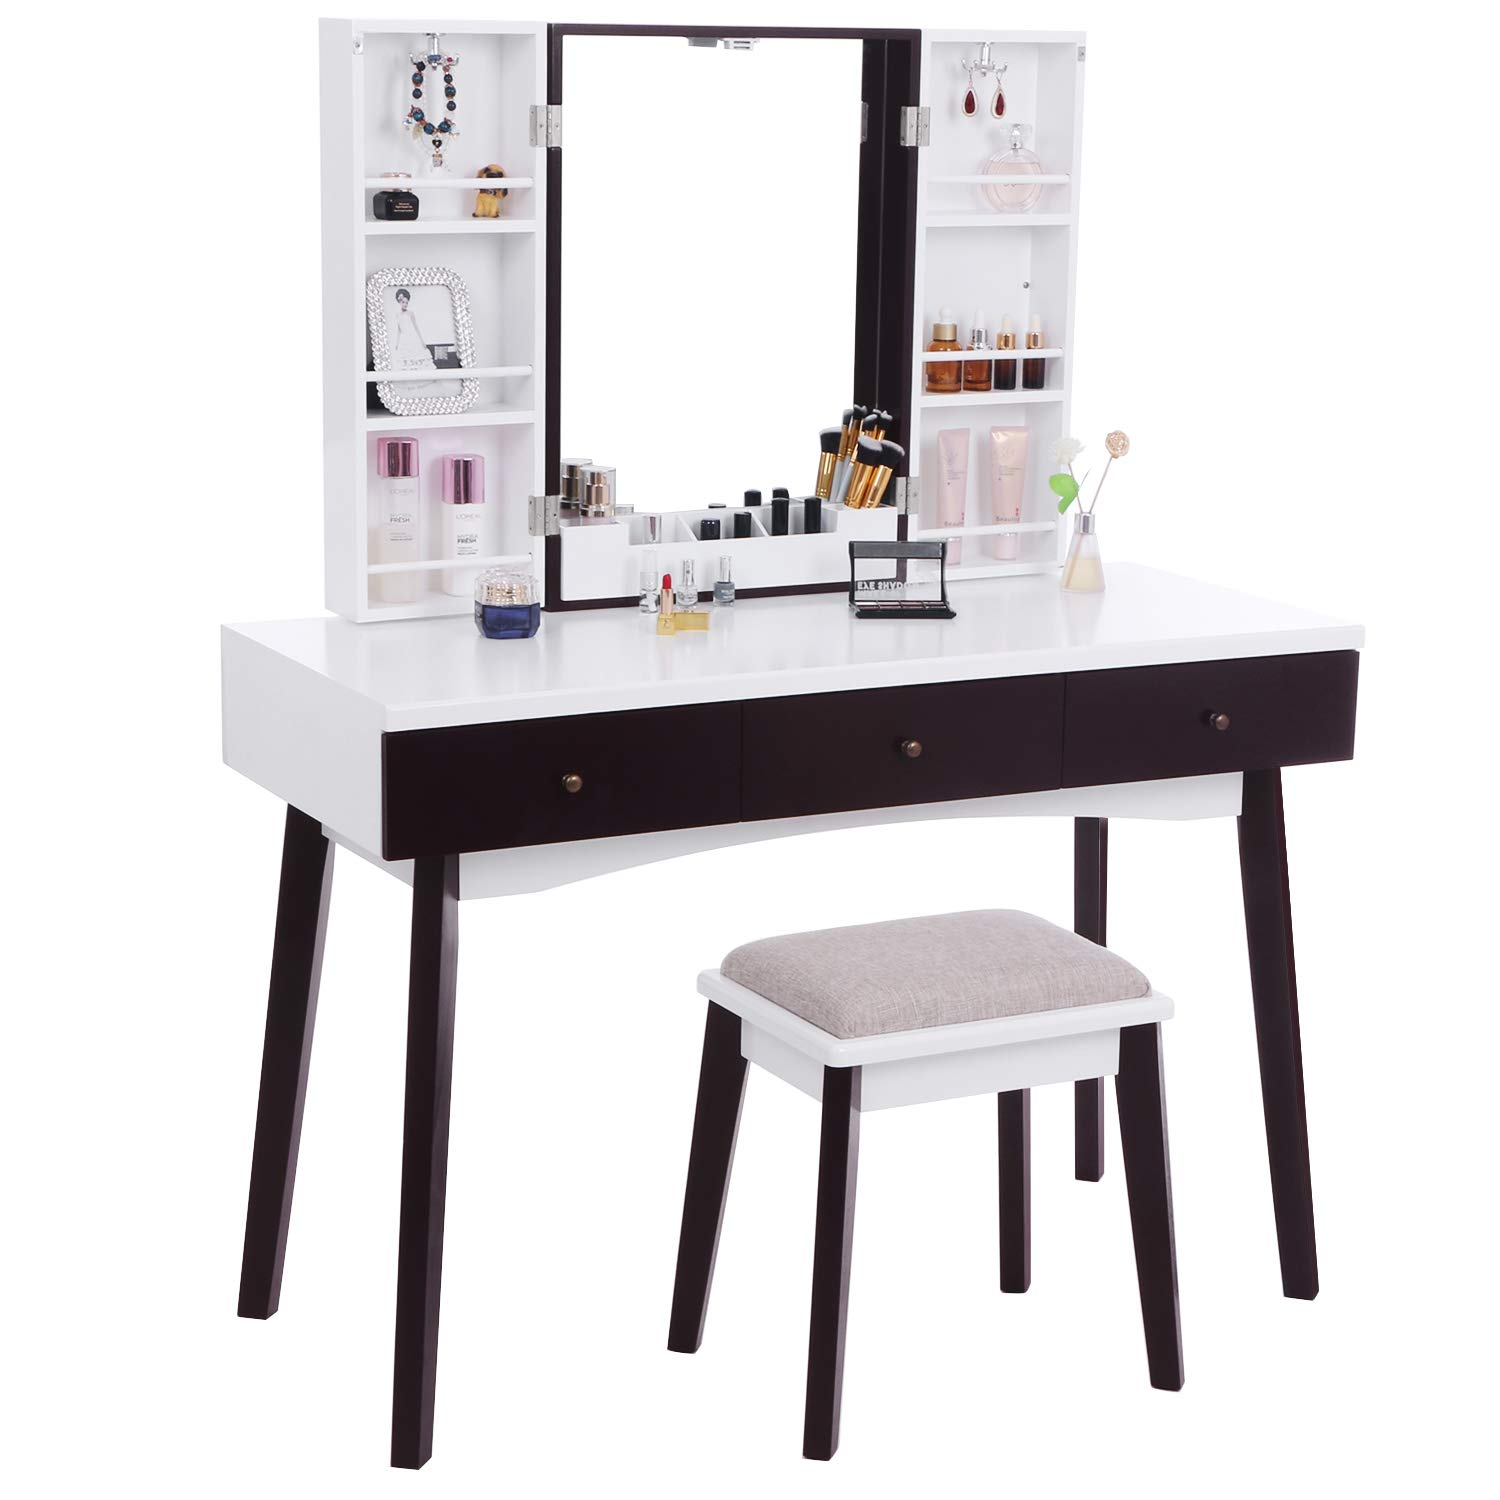 BEWISHOME Vanity Set with Mirror, Cushioned Stool, Storage Shelves, Makeup Organizer, 3 Drawers White Makeup Vanity Desk Dressing Table FST05W by BEWISHOME